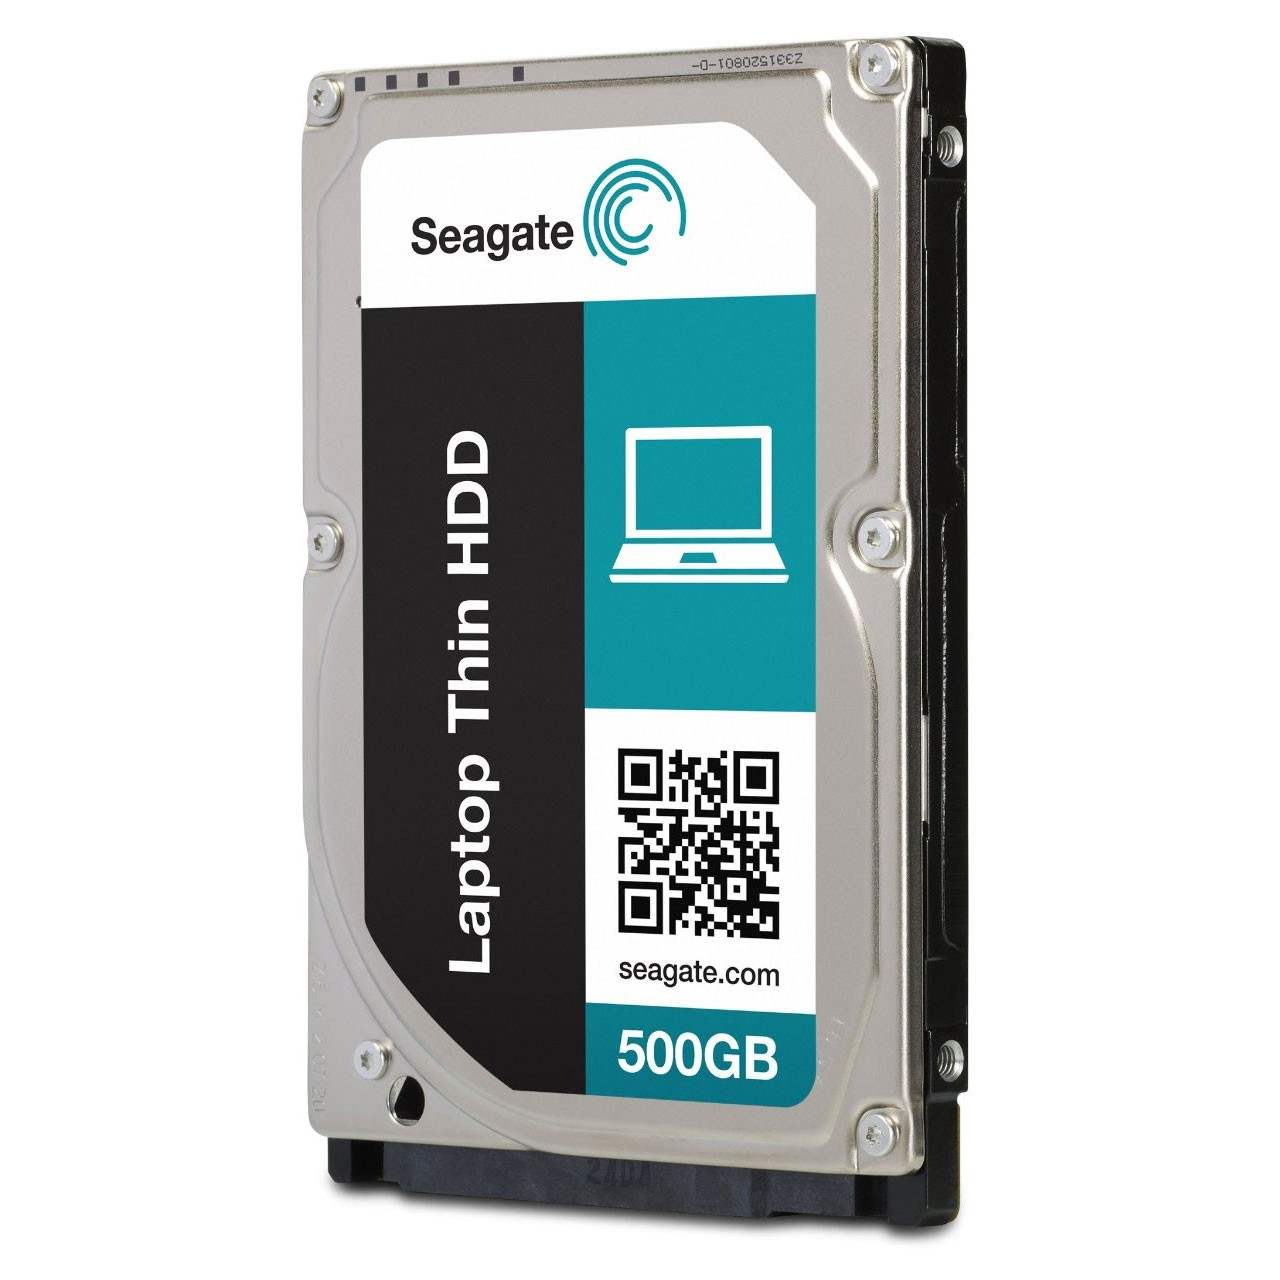 "Seagate Laptop Thin ST500LM021 500GB 7200 RPM 32MB Cache SATA 6.0Gb/s 2.5"" 7mm Hard Drive"